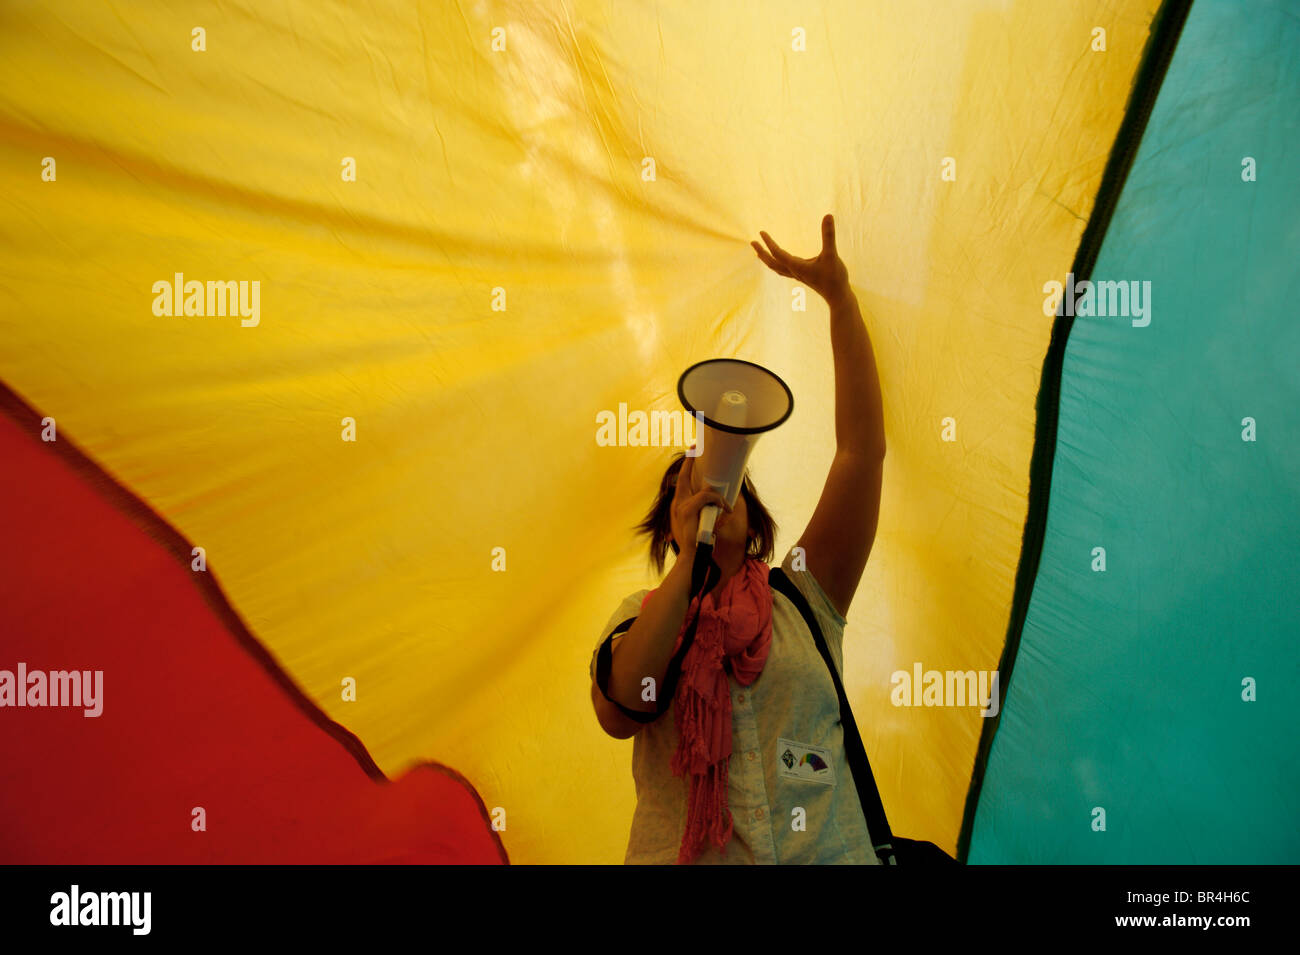 Protester with megaphone under red yellow and green flag - Stock Image